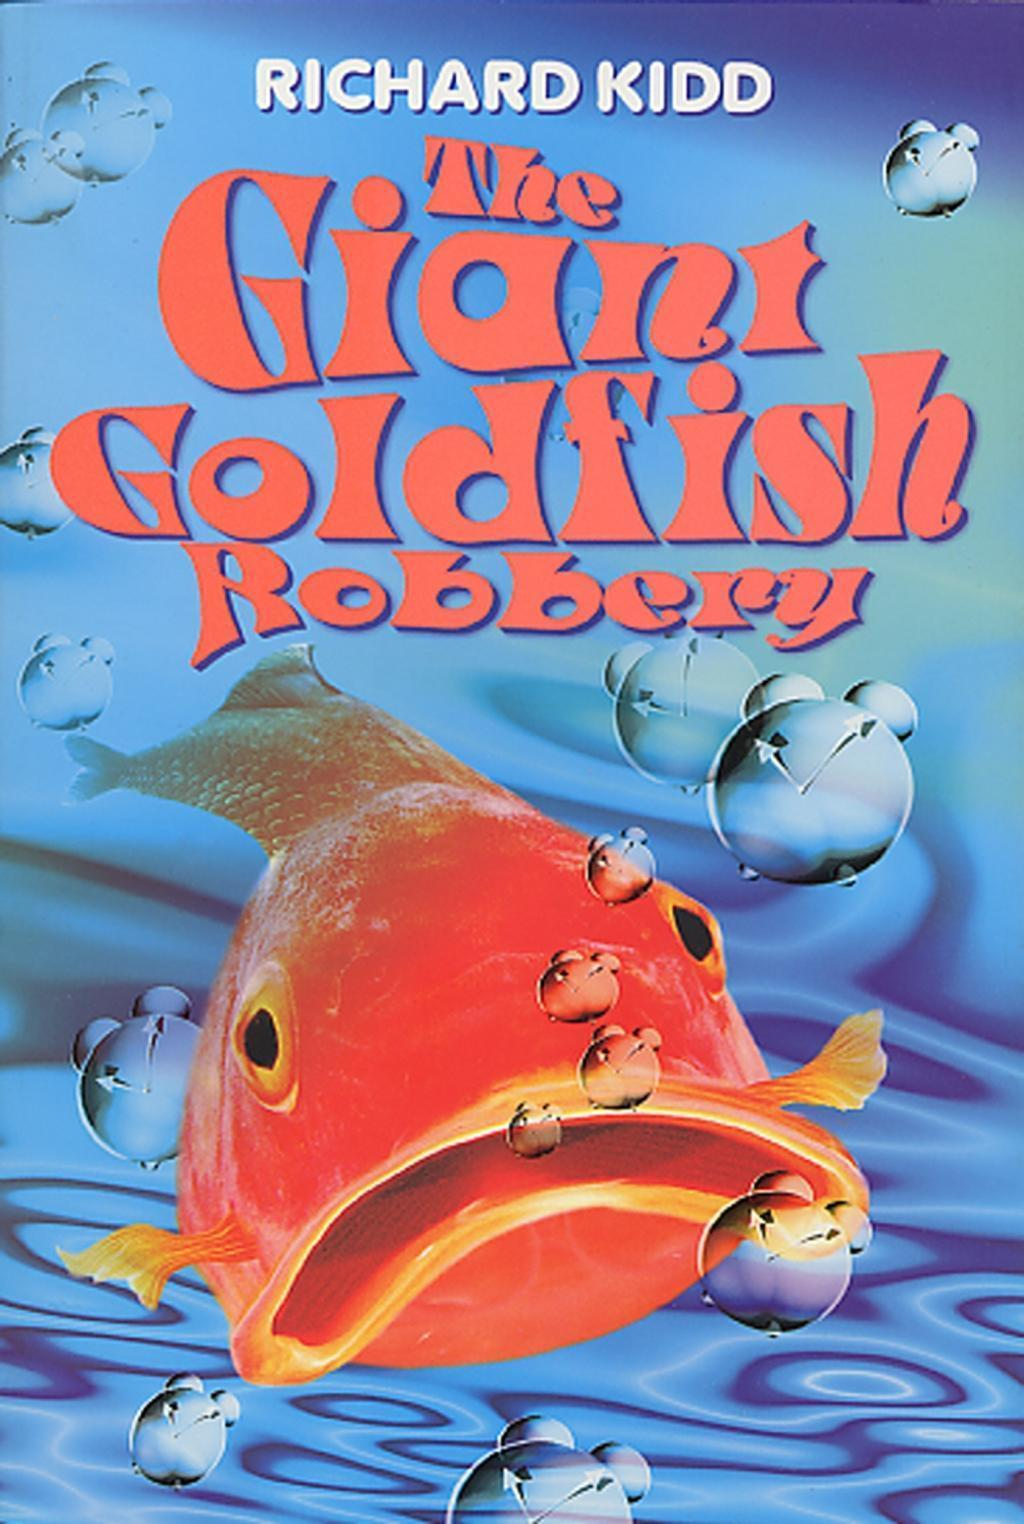 The Giant Goldfish Robbery